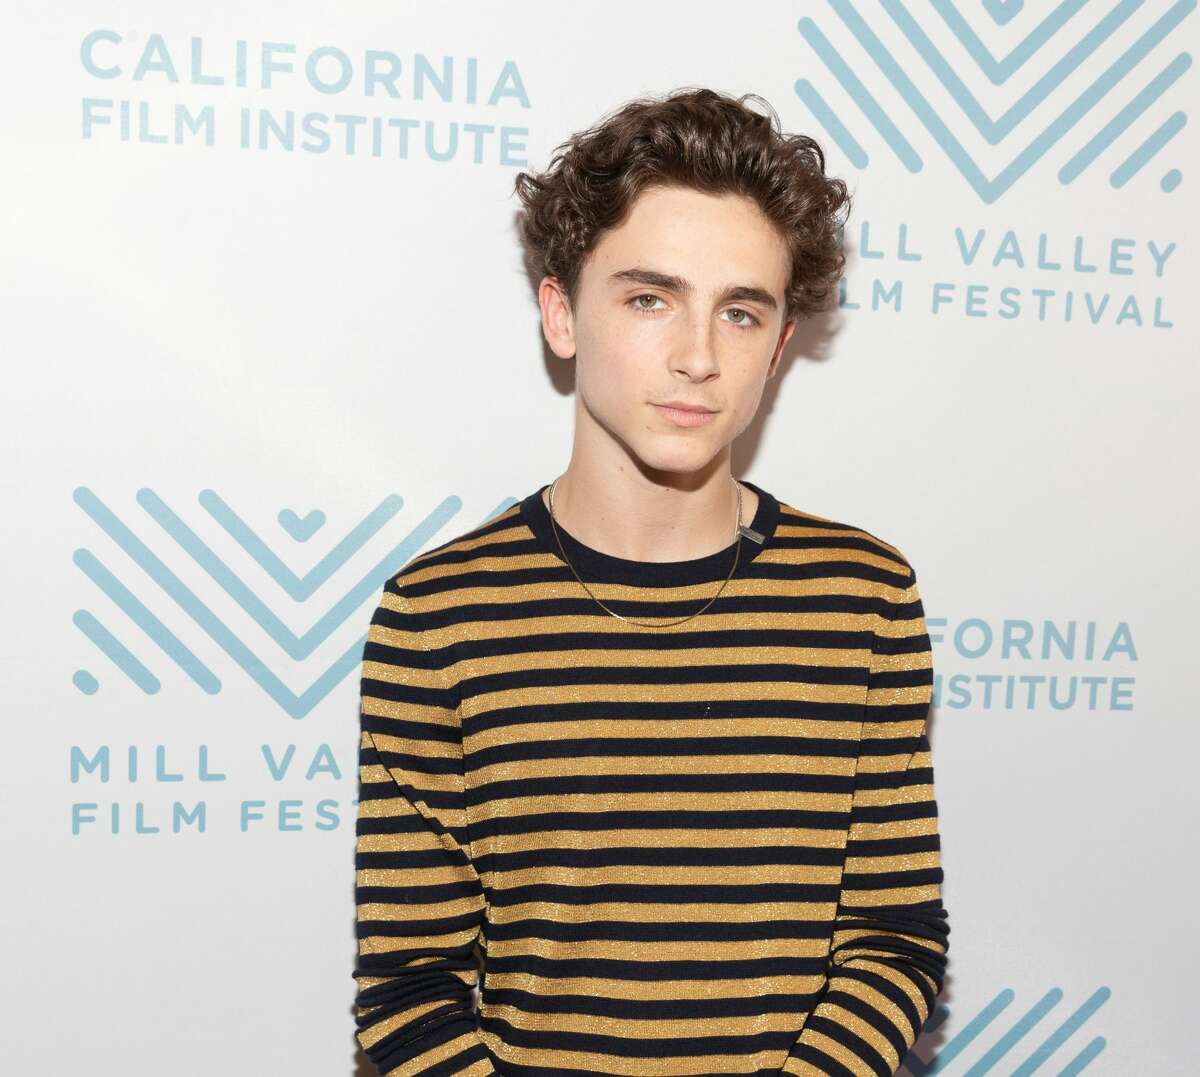 Timothee Chalamet attends MVFF41 Red Carpet Arrival for